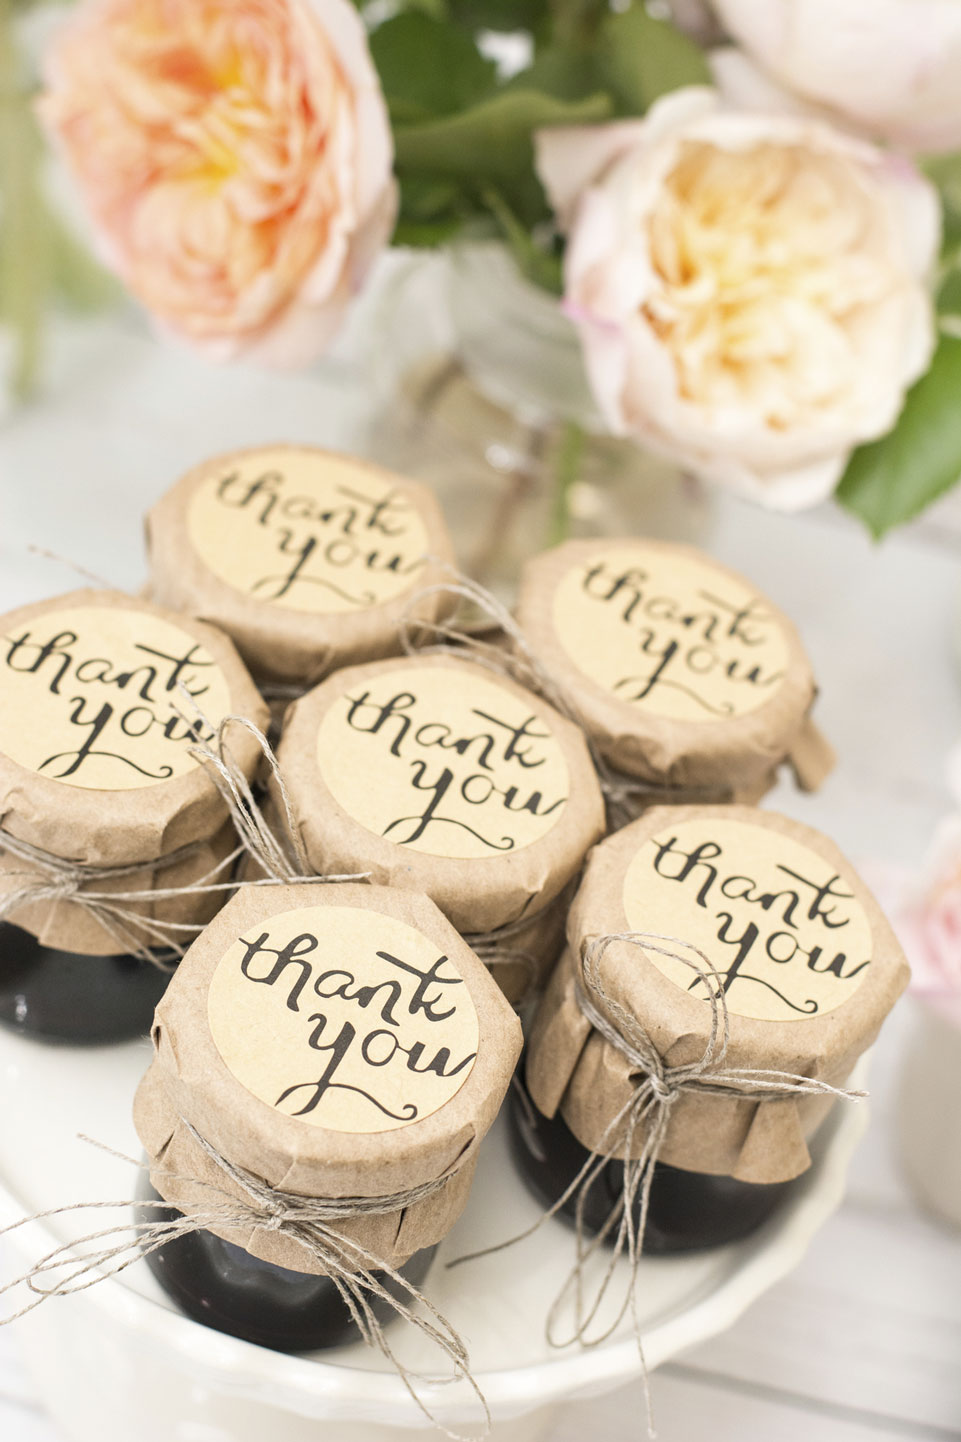 Wedding-favors-000093543895_Medium.jpg